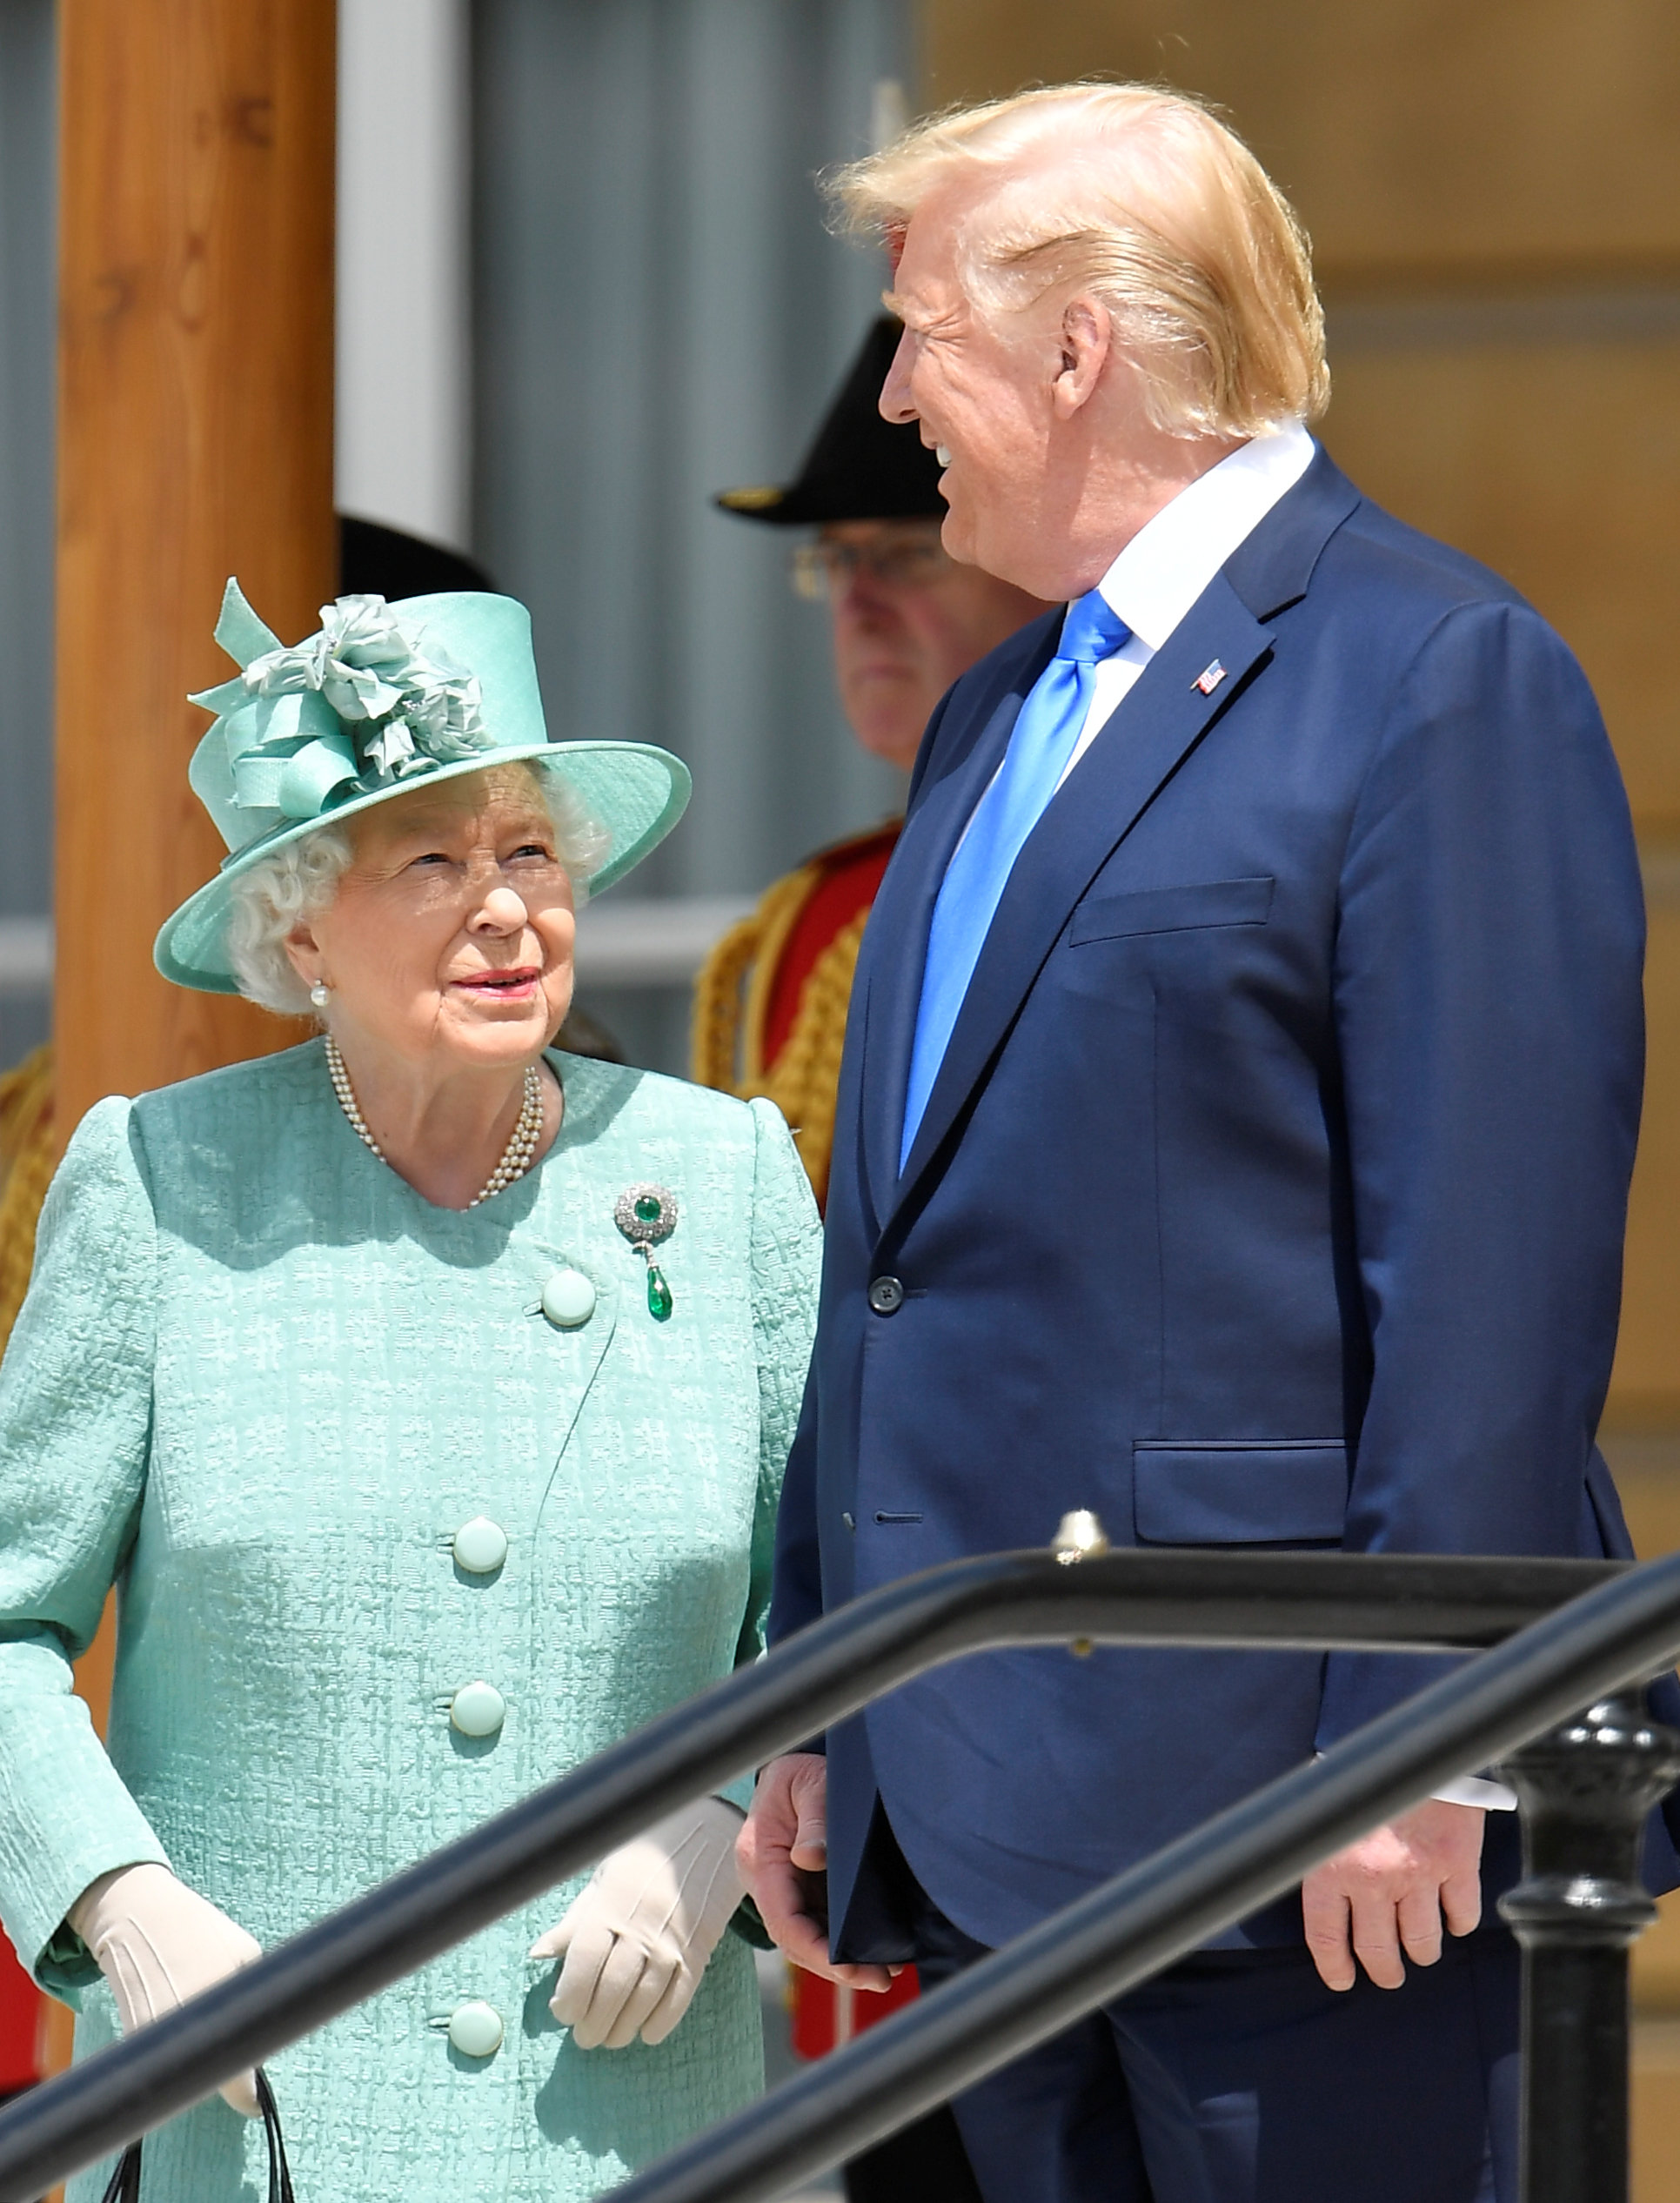 LONDON, ENGLAND - JUNE 03: Queen Elizabeth II stands with US President Donald Trump during a welcome ceremony at Buckingham Palace on June 3, 2019 in London, England. President Trump's three-day state visit will include lunch with the Queen, and a State Banquet at Buckingham Palace, as well as business meetings with the Prime Minister and the Duke of York, before travelling to Portsmouth to mark the 75th anniversary of the D-Day landings. (Photo by Toby Melville - WPA Pool/Getty Images)